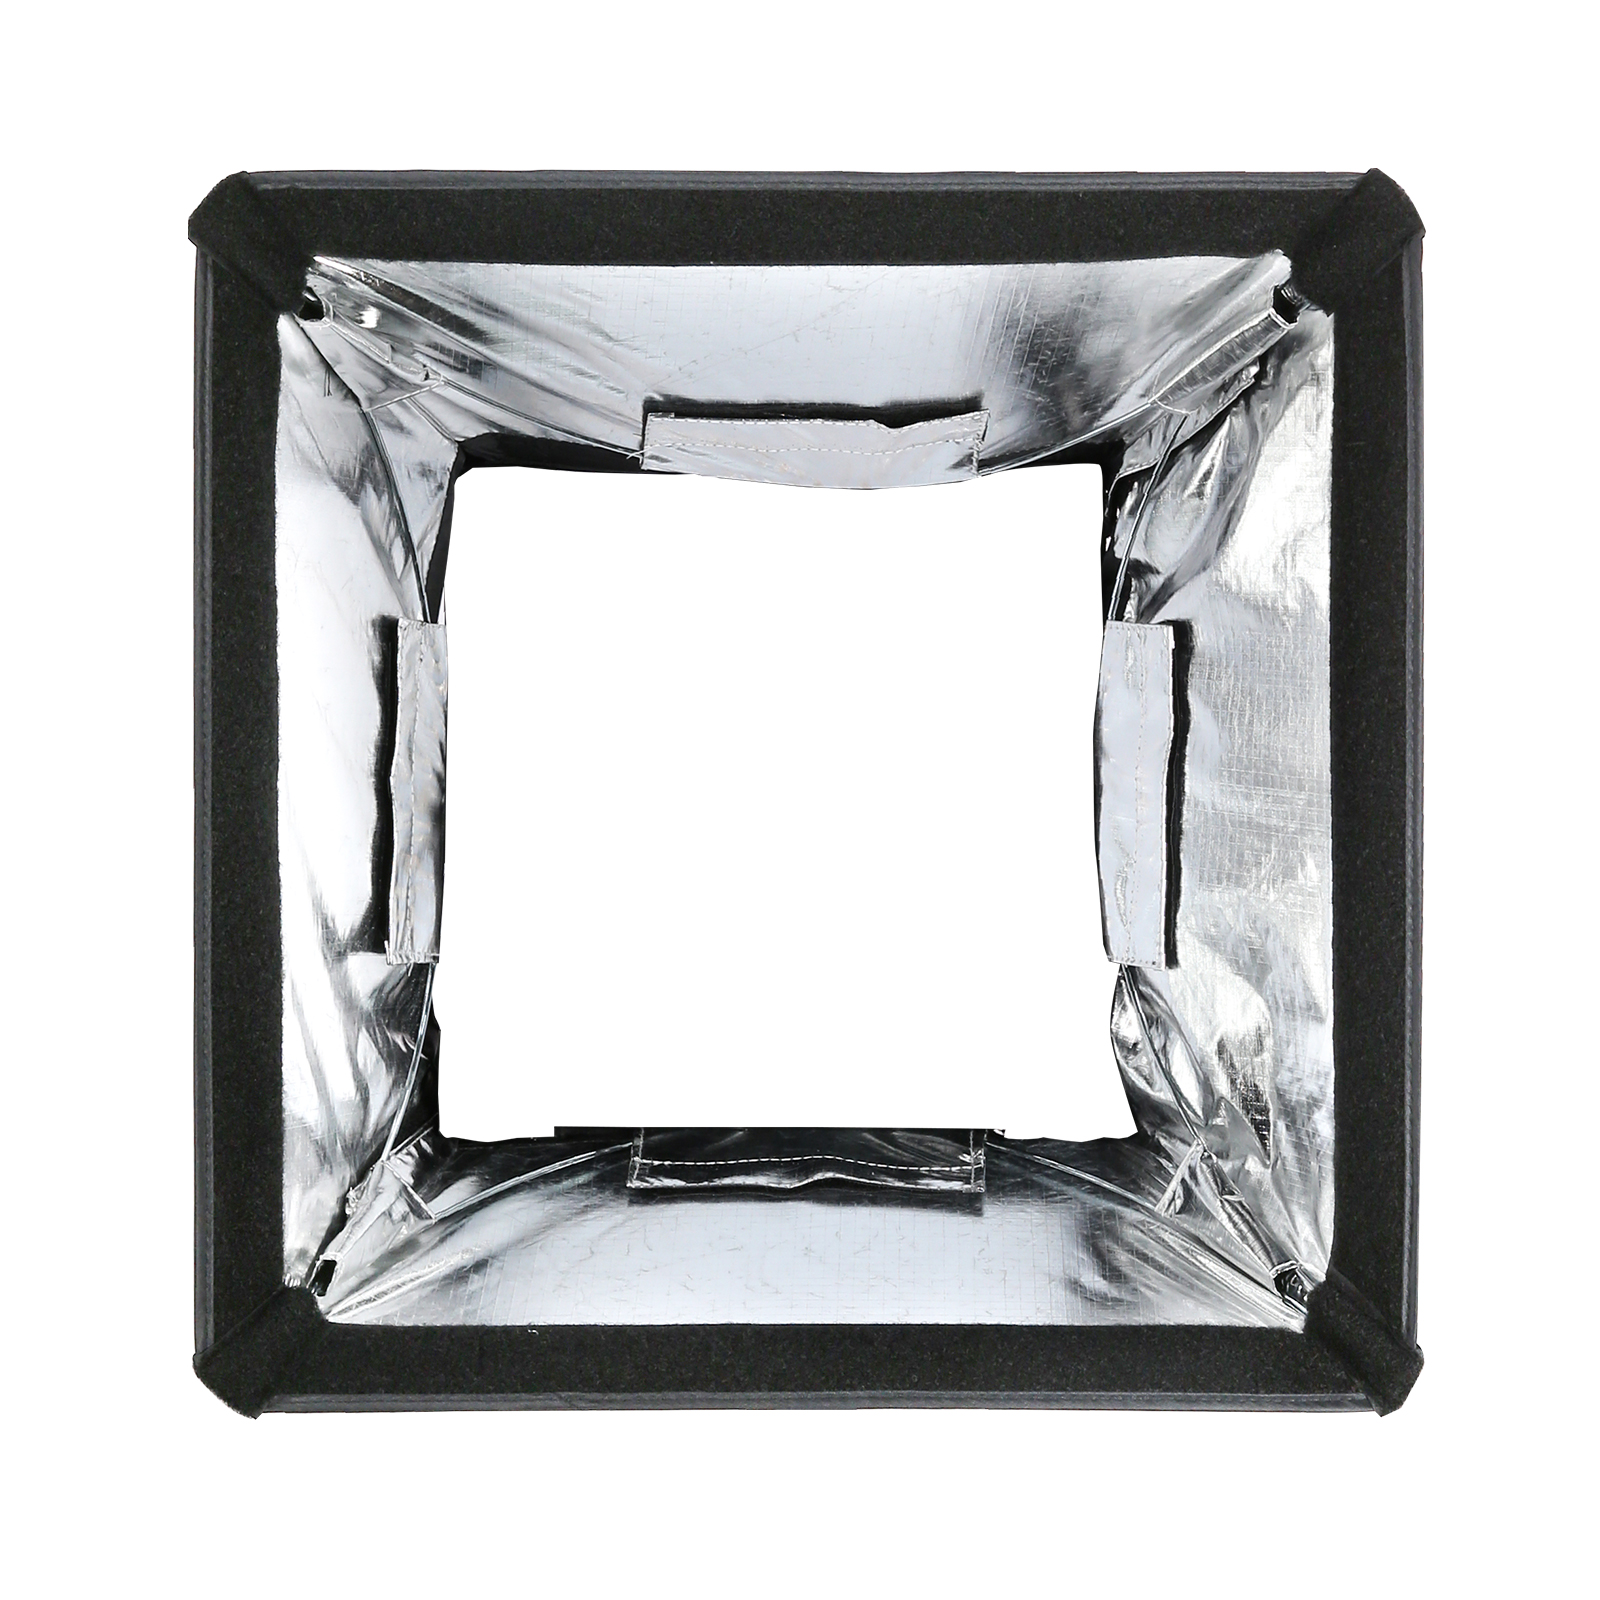 Pixel F5c LED Softbox Diffusor, soft light, delicate and even.